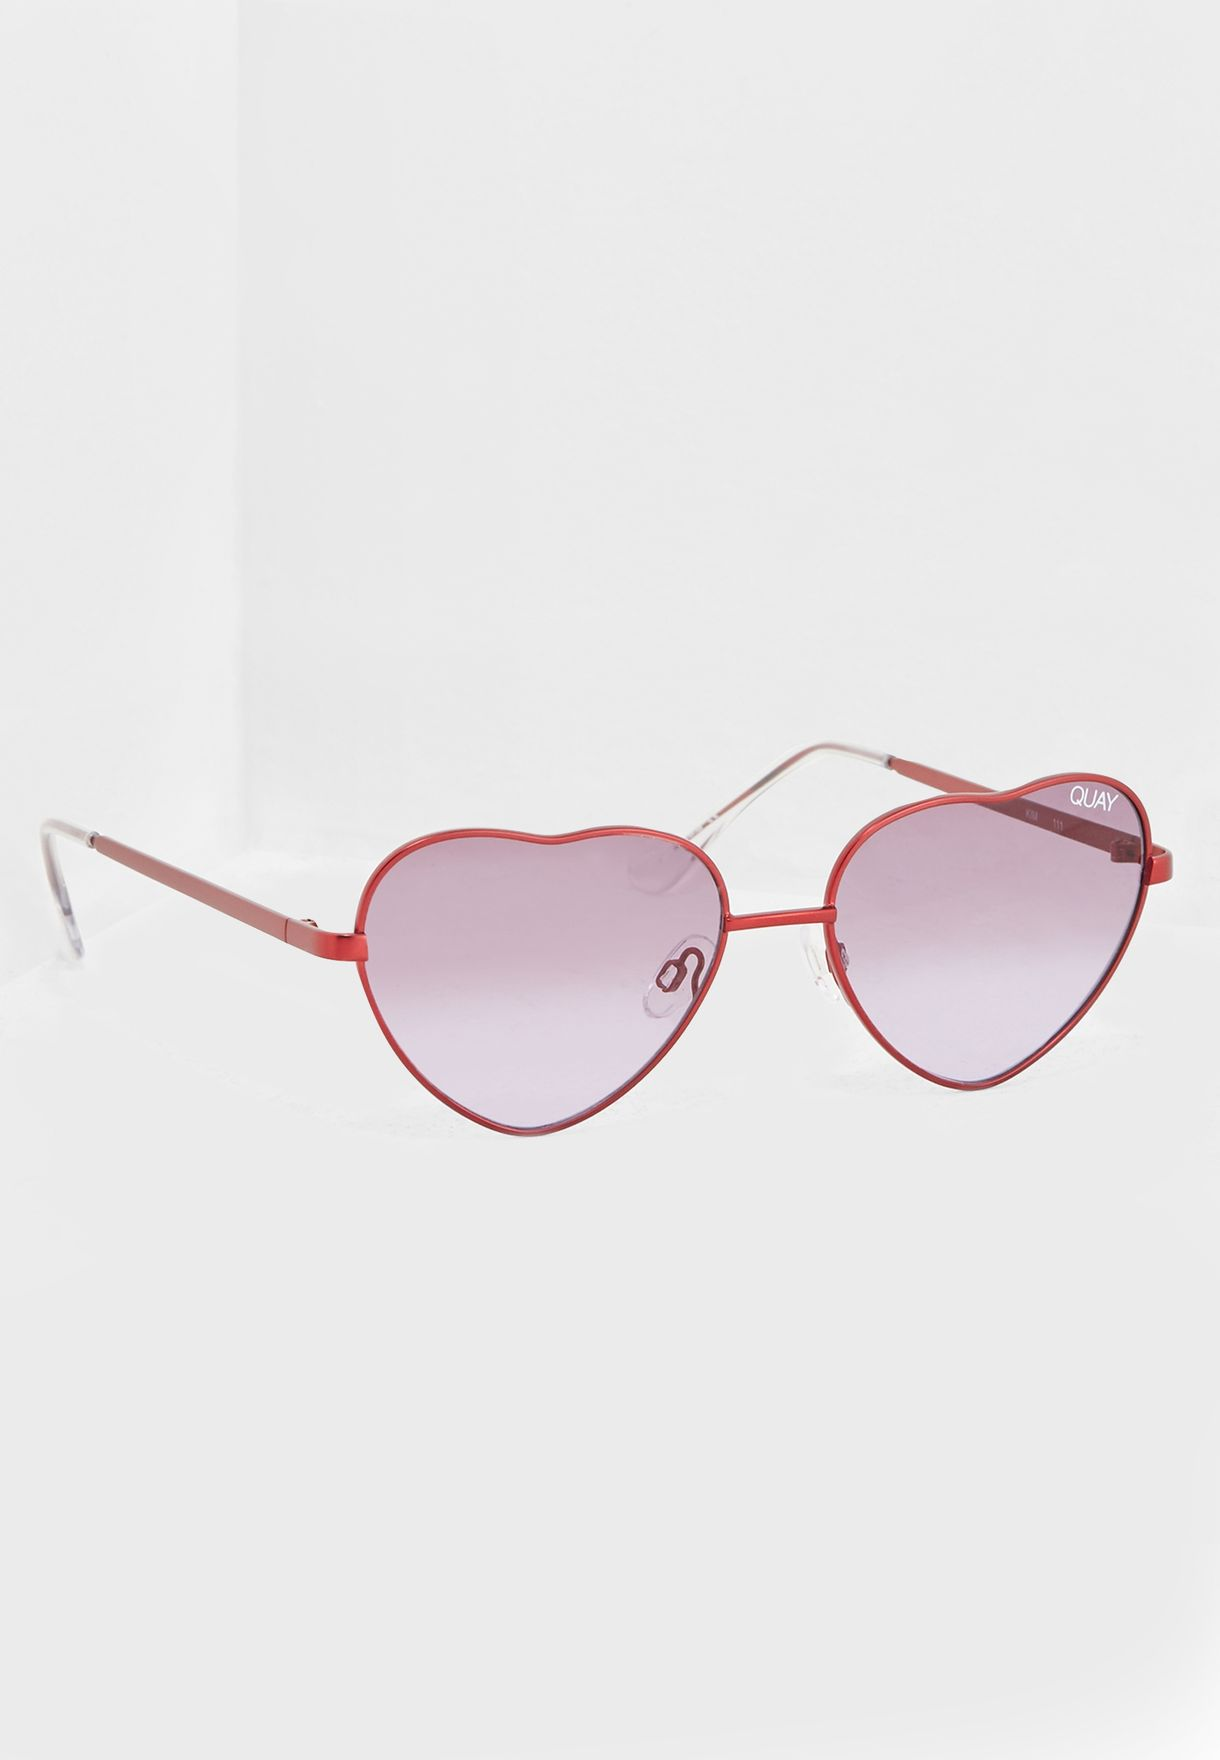 4a172225bcfa3 Shop Quay Australia burgundy Kim Heart Sunglasses QW-000401-RED ...